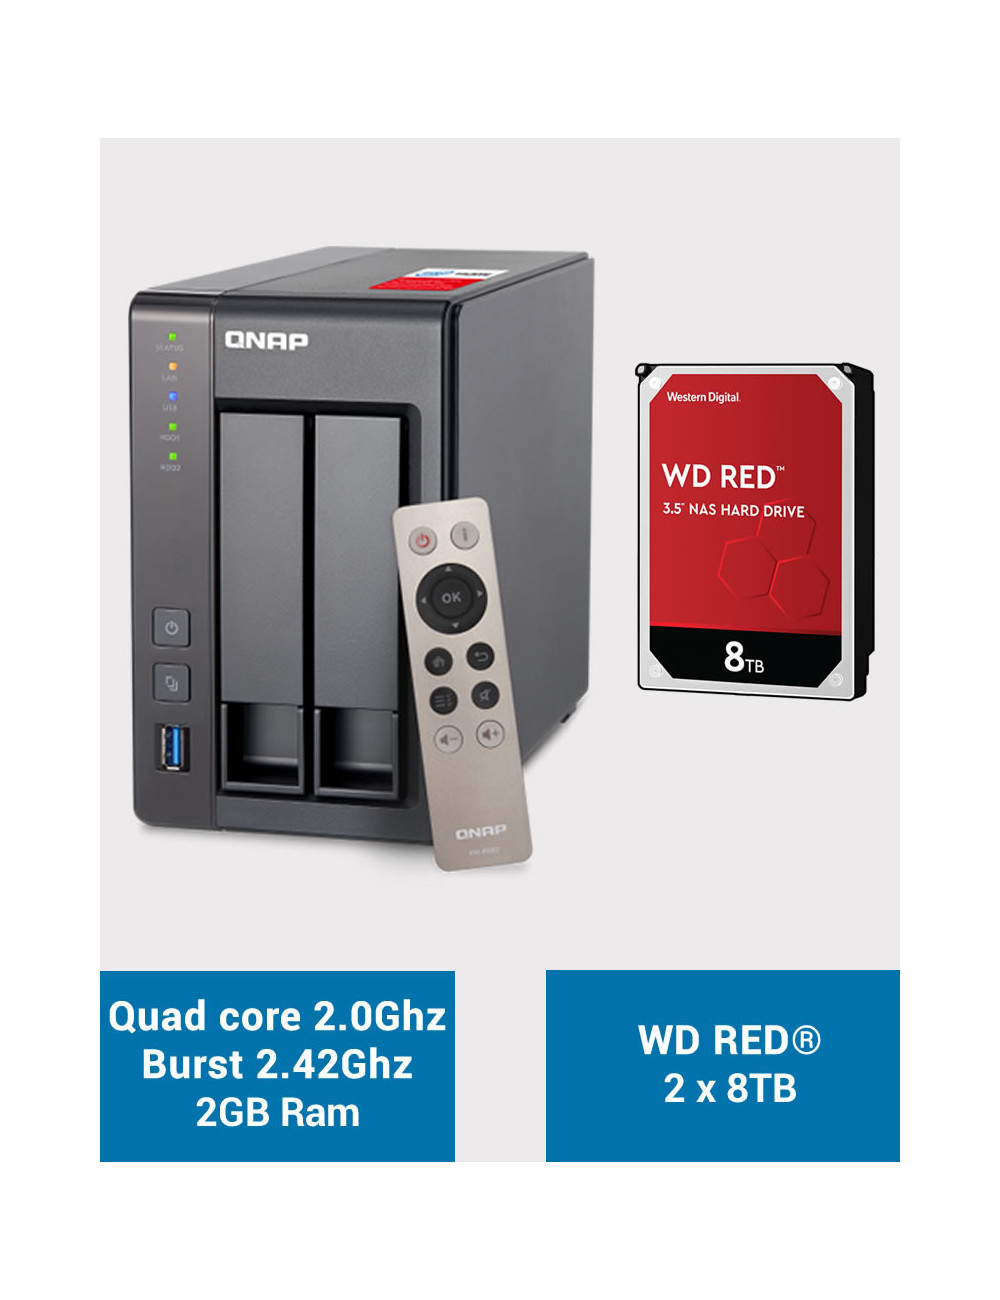 QNAP TS-251+ Serveur NAS WD RED 16 To